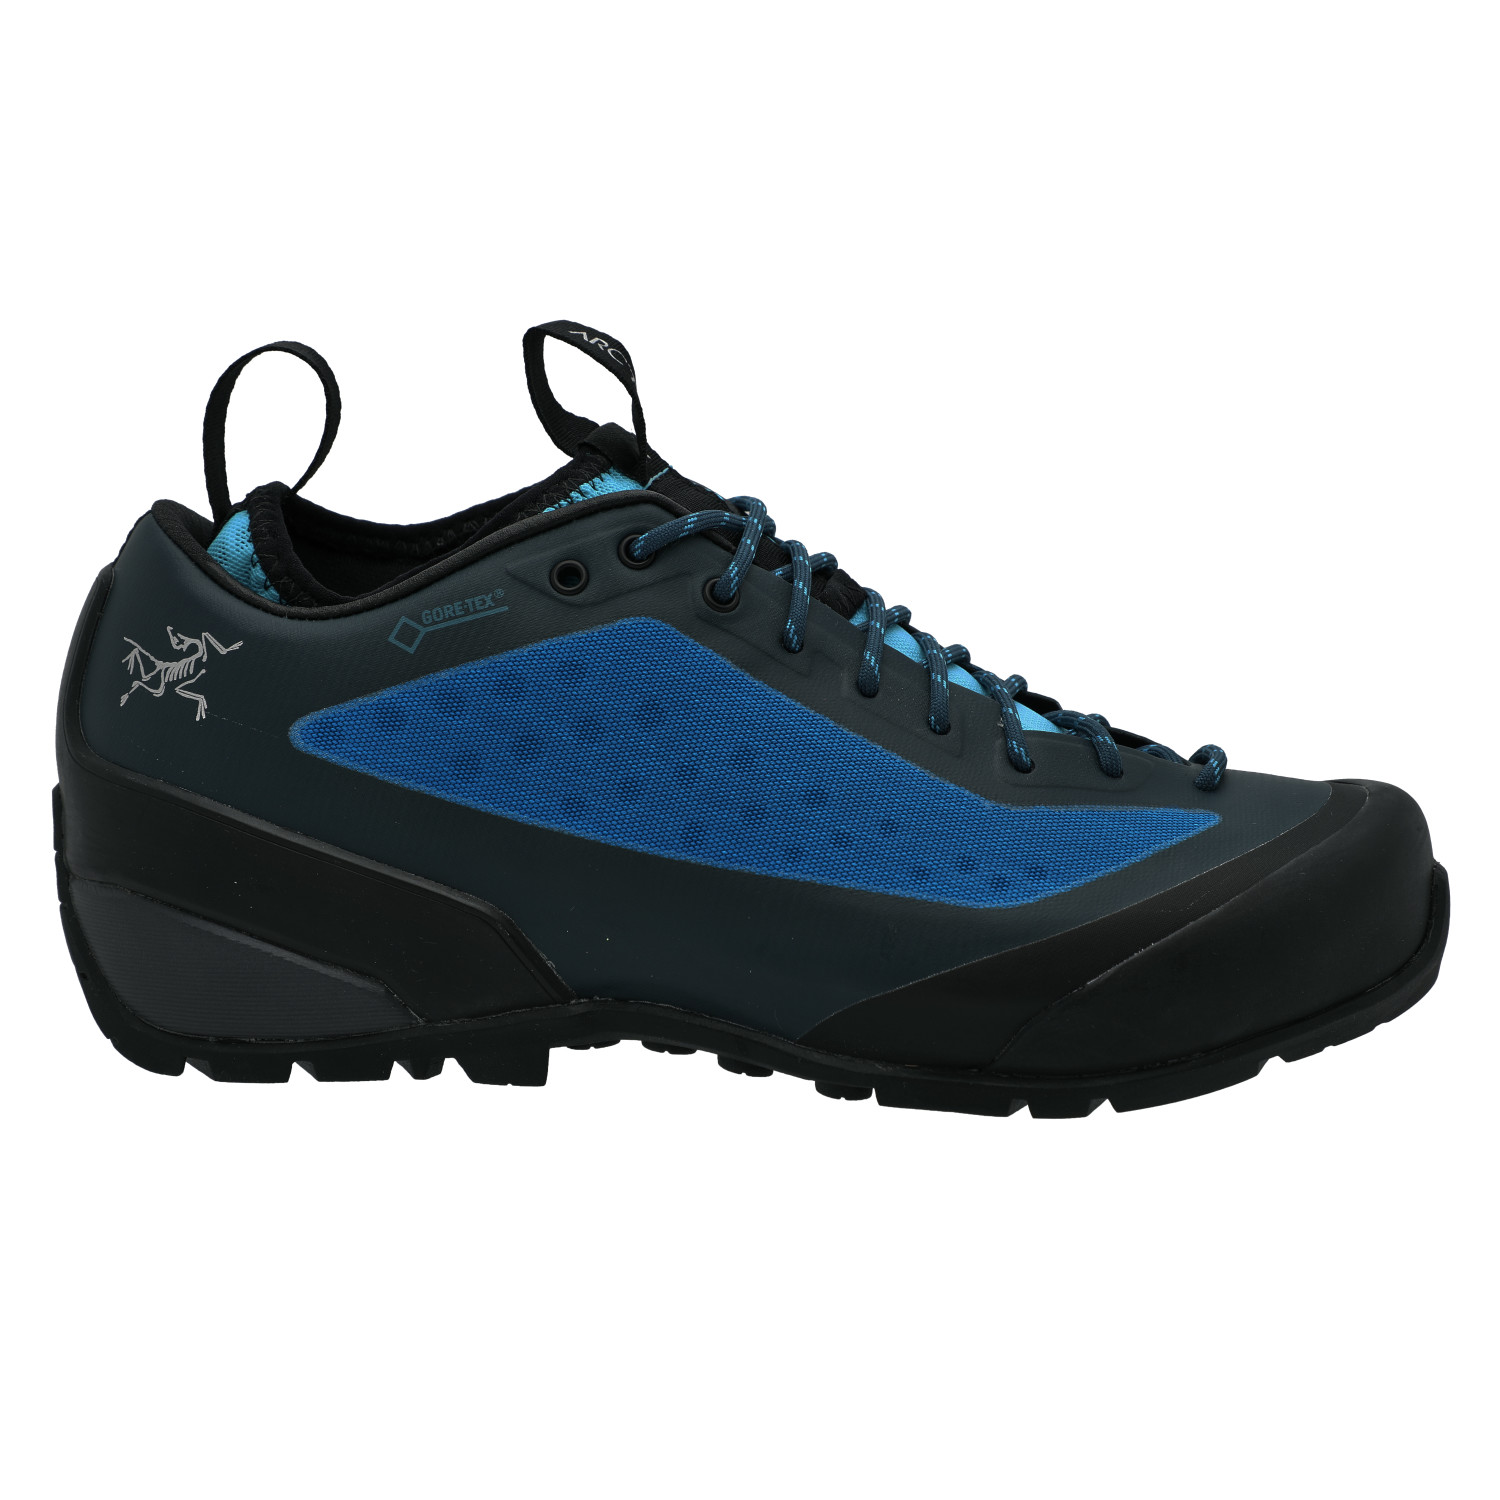 Main product image: Acrux FL GTX Approach Shoe Women's